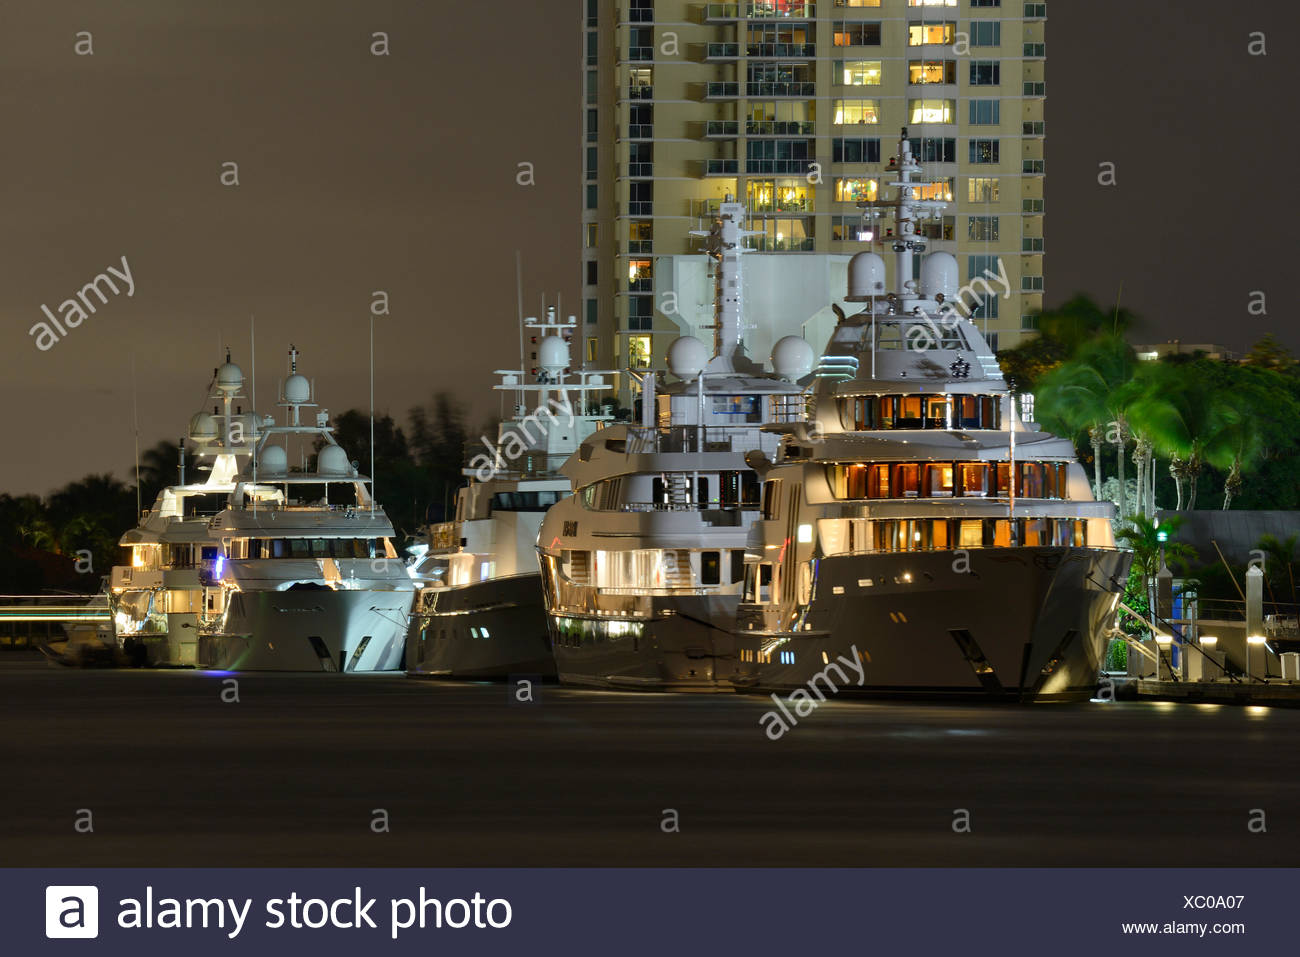 USA, Florida, Broward County, Fort Lauderdale Stock Photo